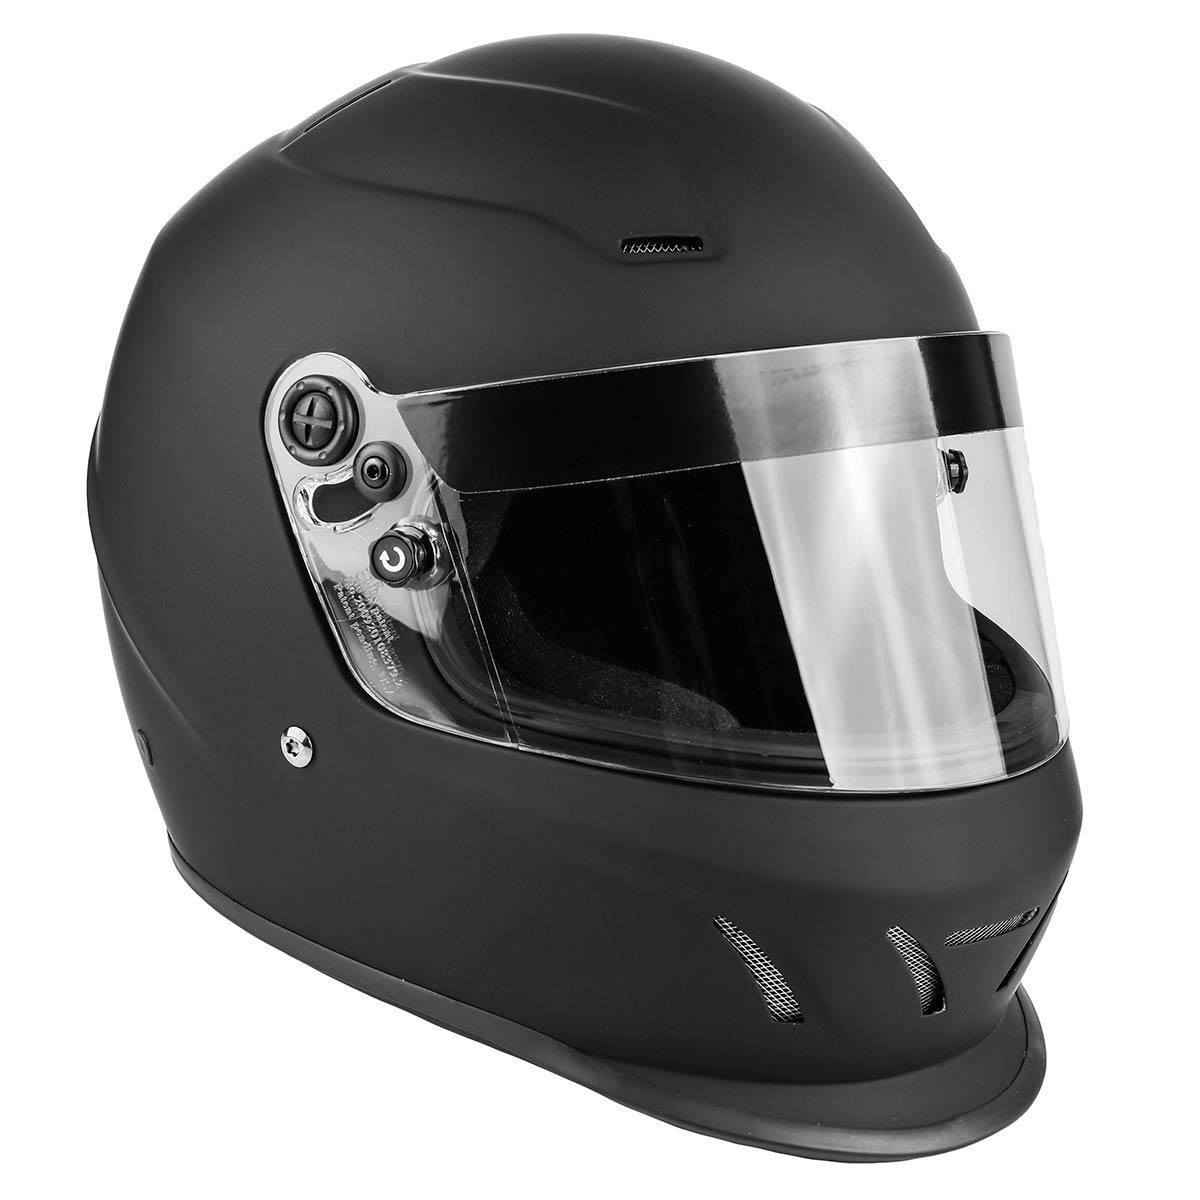 Auto Racing Helmets >> Typhoon Helmets Snell Sa2015 Approved Full Face Autocross Racing Helmet Matte Black Large